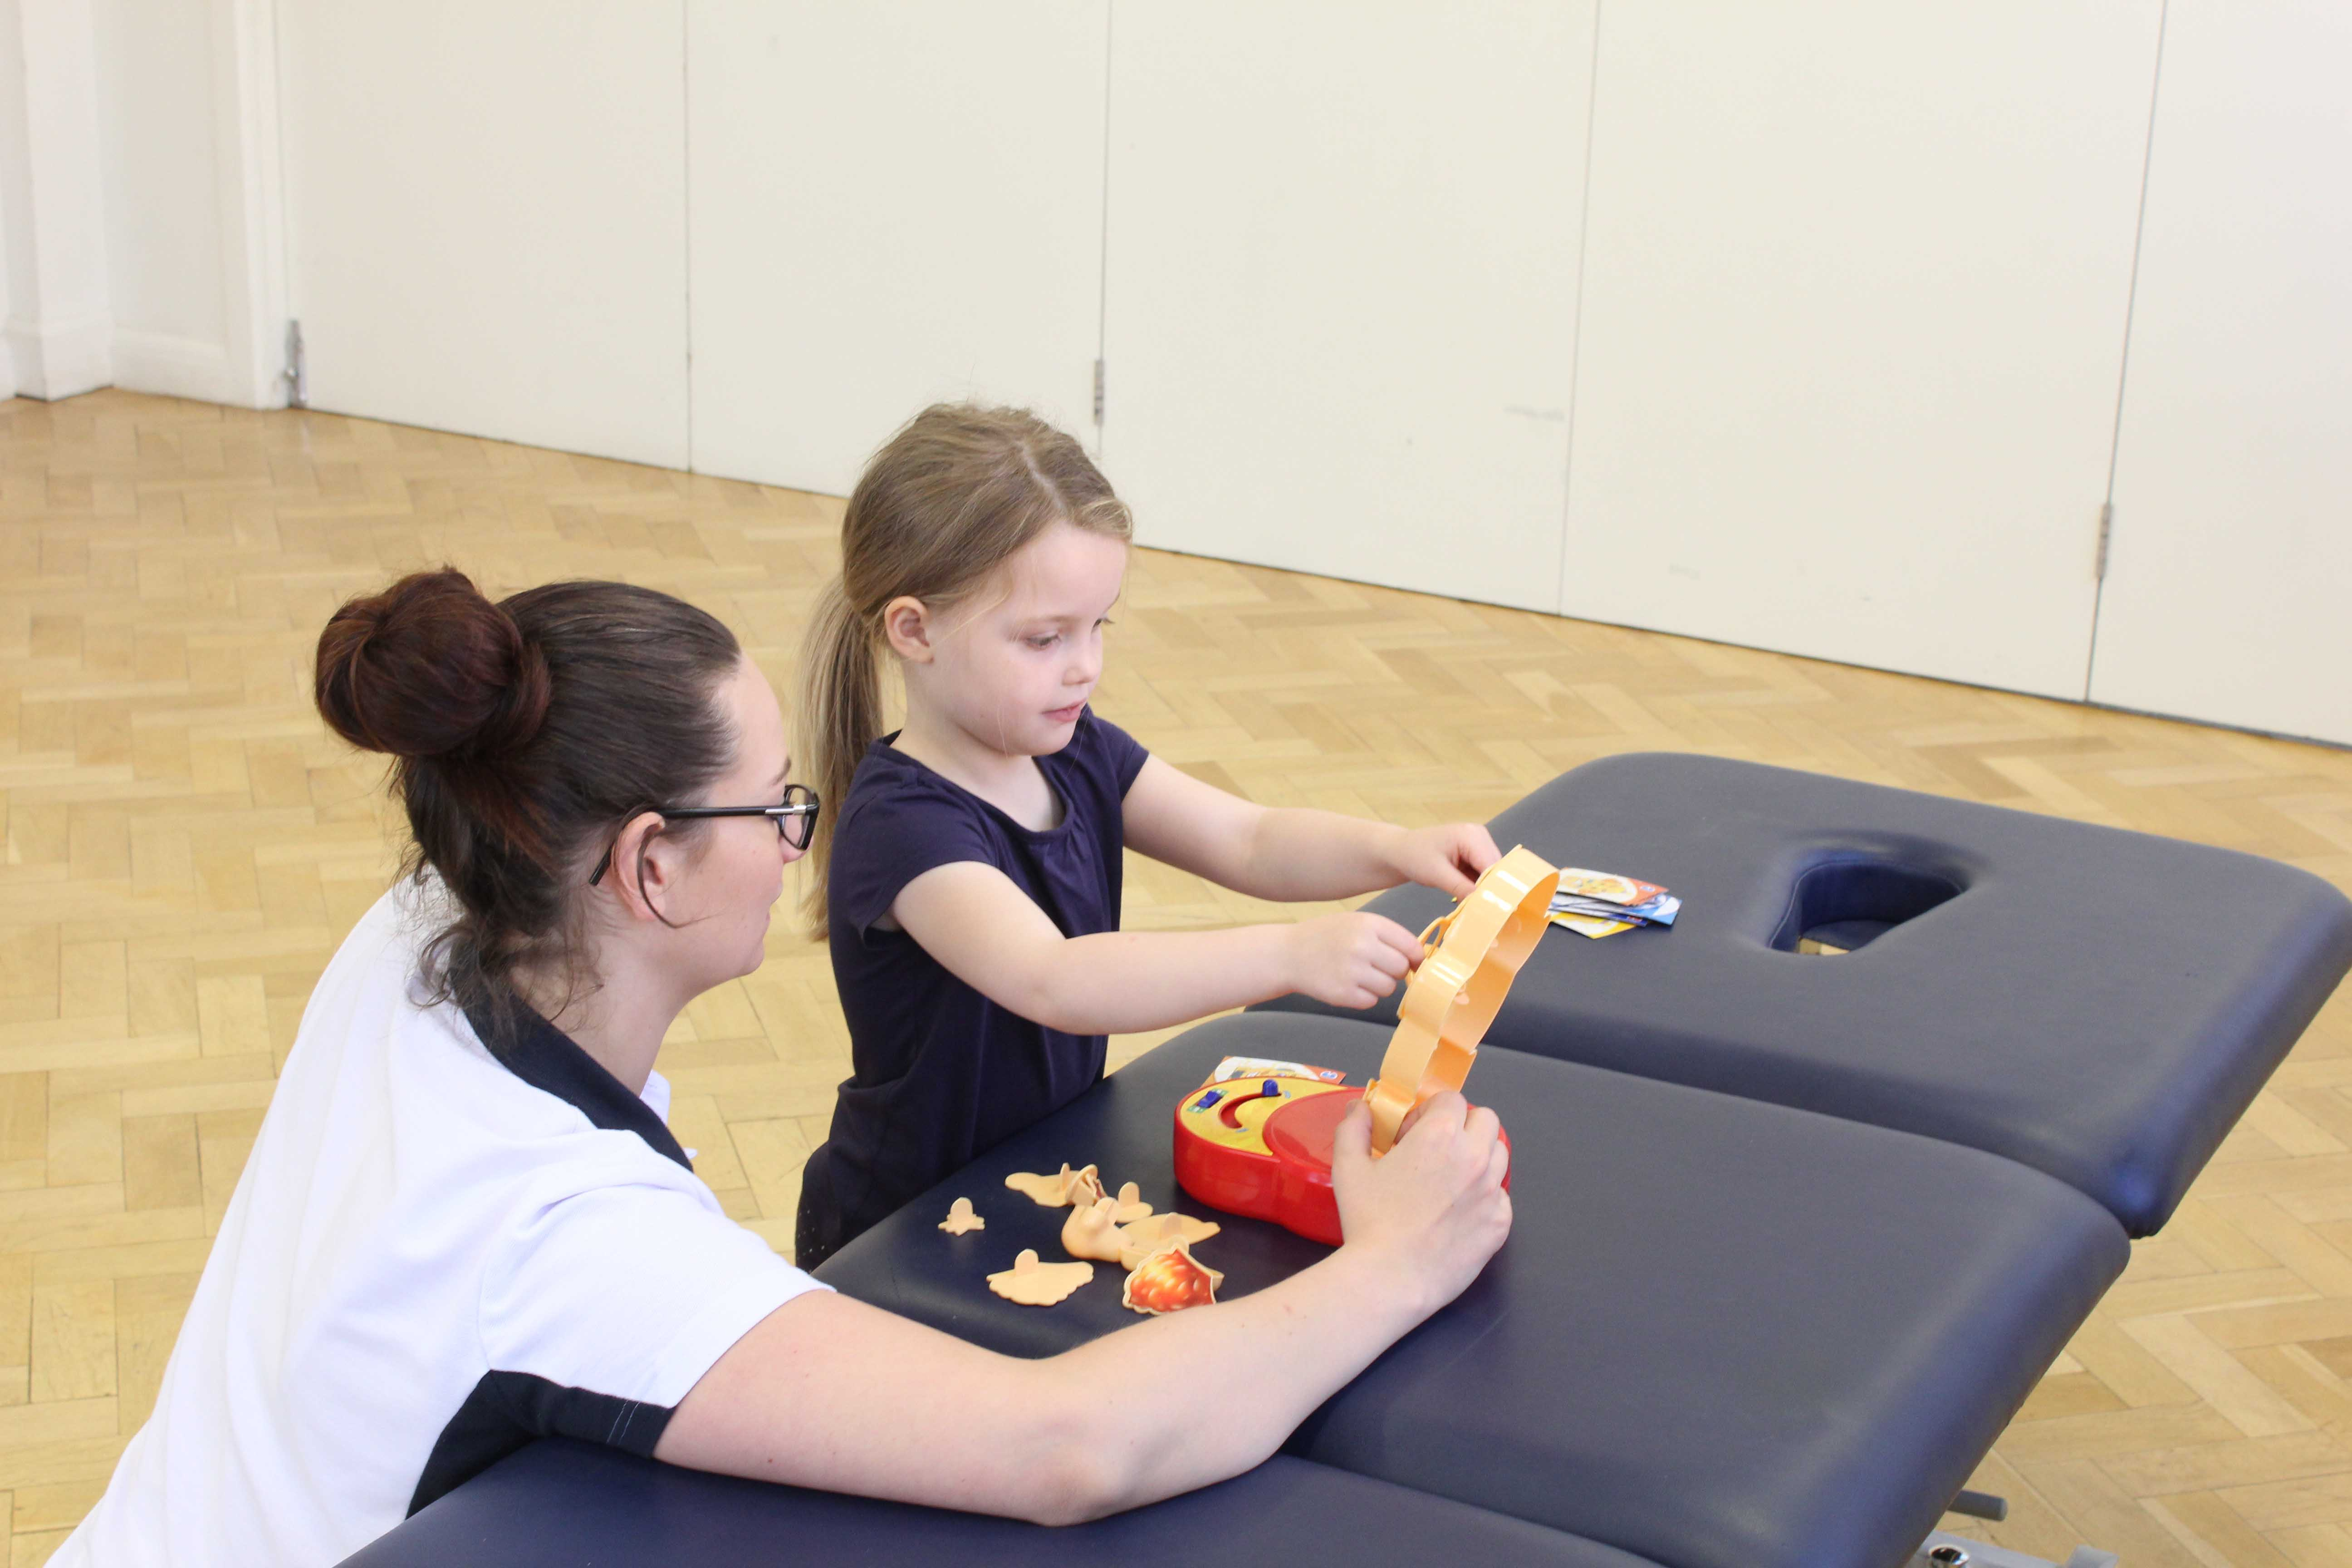 Functional fine motor skills practiced under supervision of a neurological physiotherapist